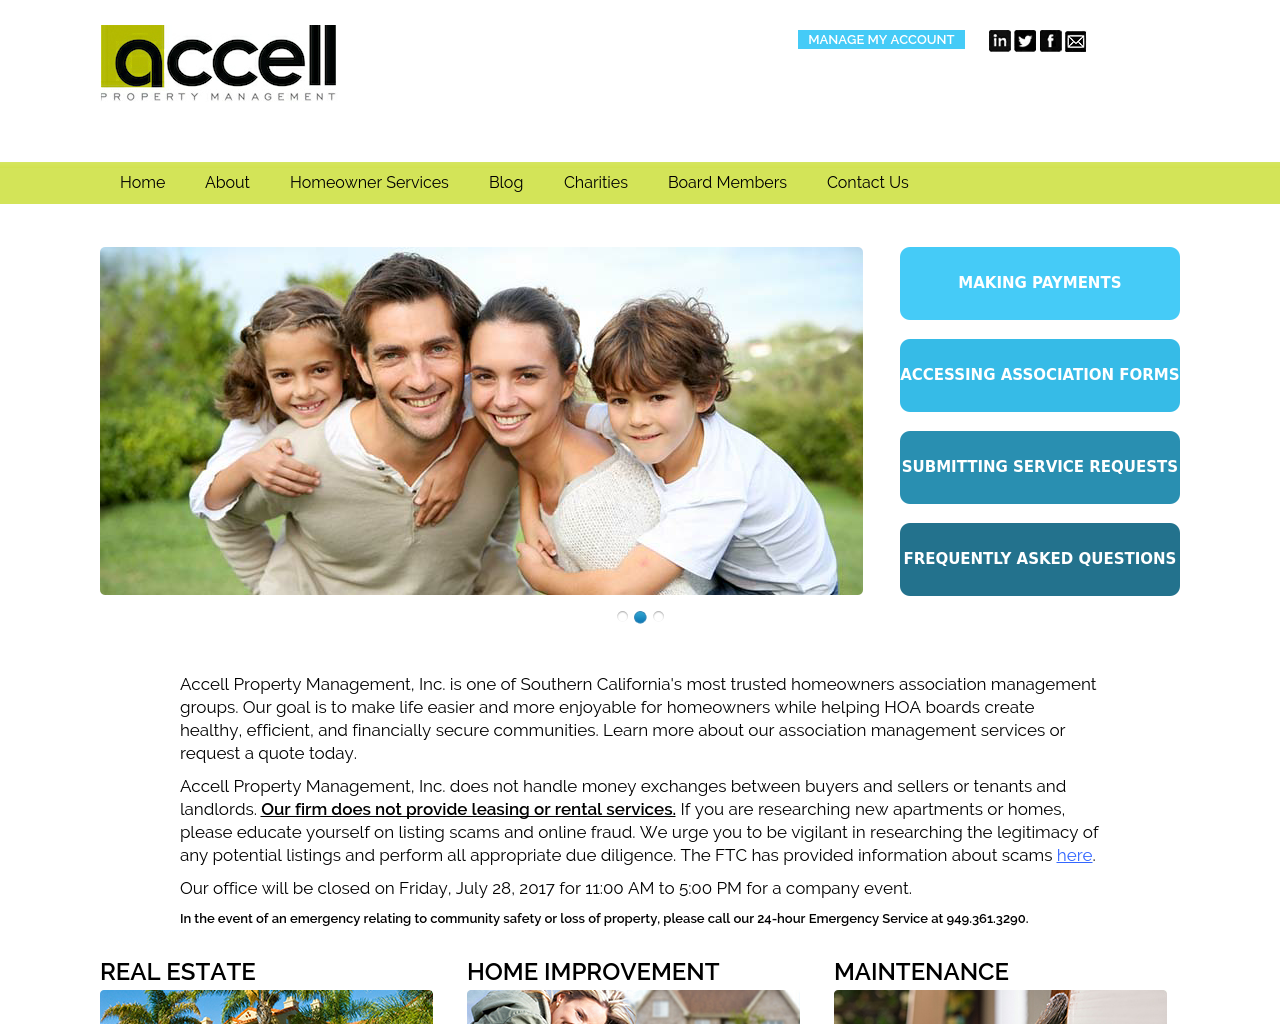 Accell-Property-Management-Advertising-Reviews-Pricing